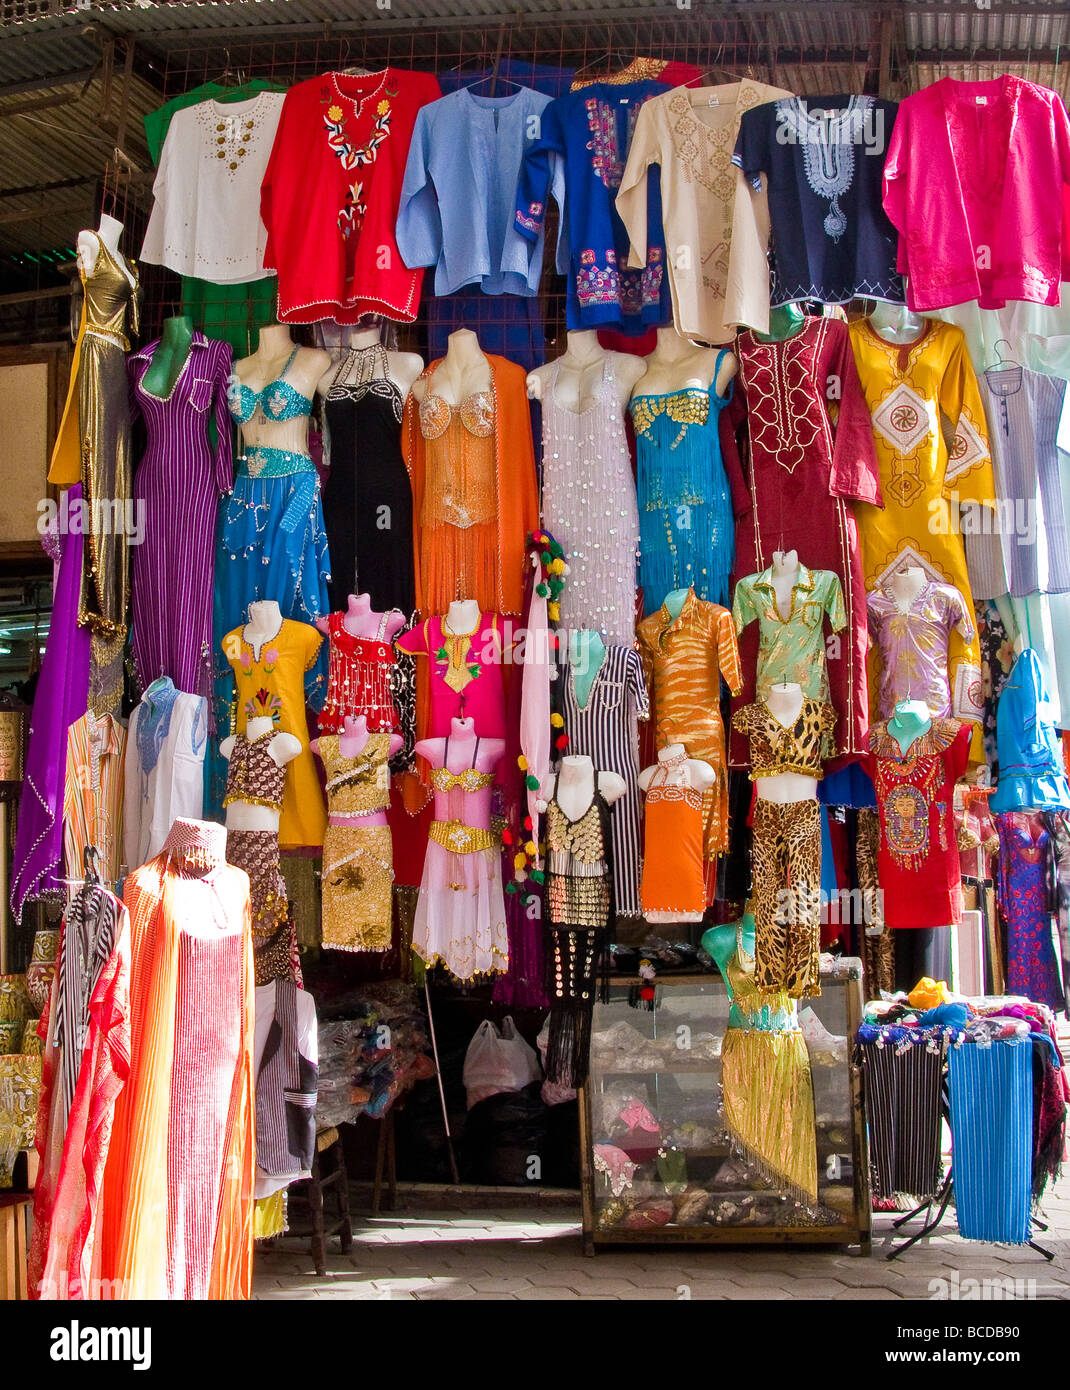 Clothing stores in cairo egypt